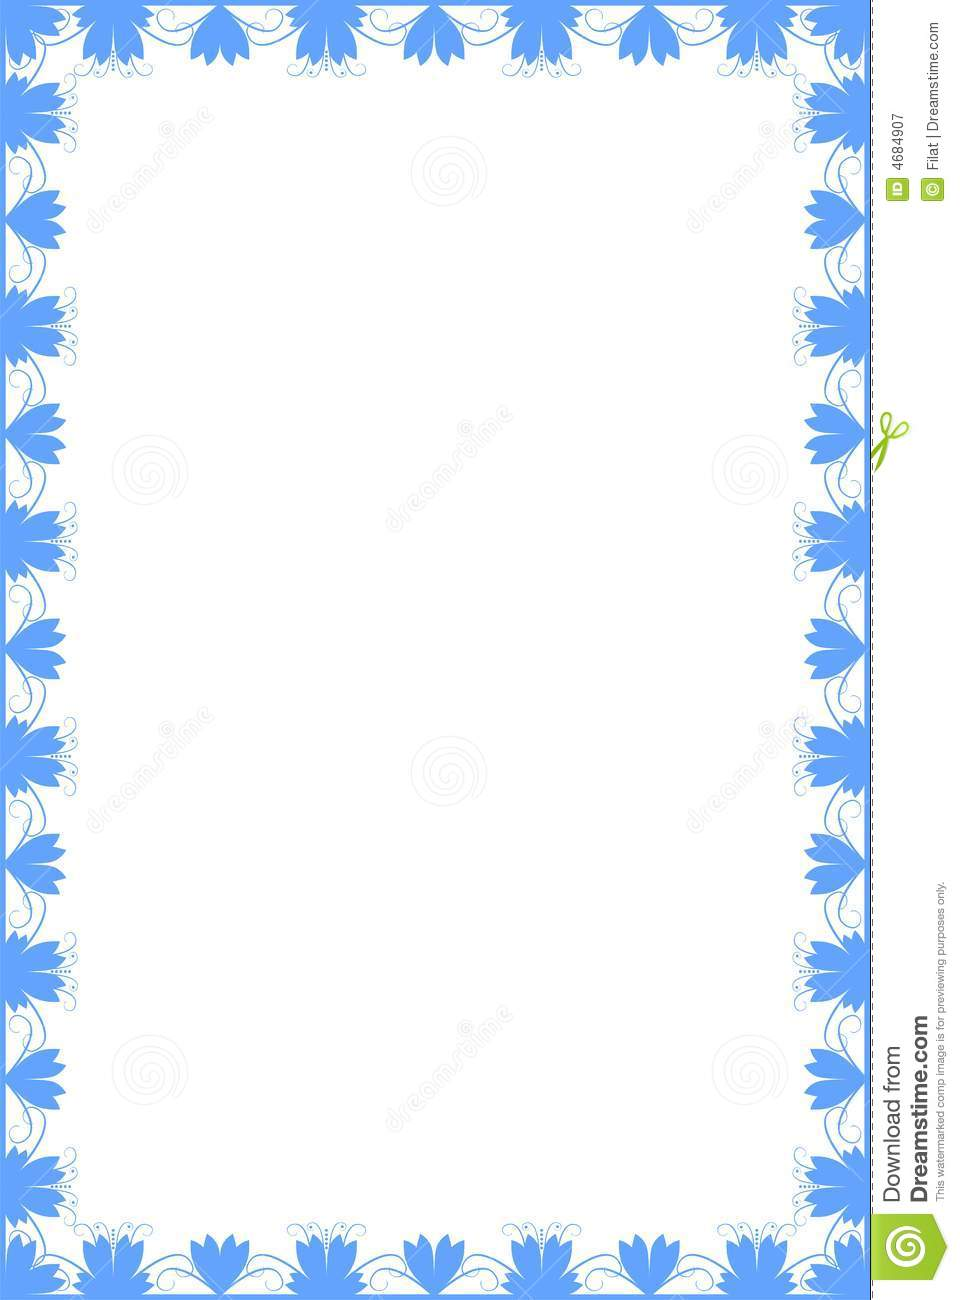 Simple Border Stock Vector Illustration Of Elegance Silhouette